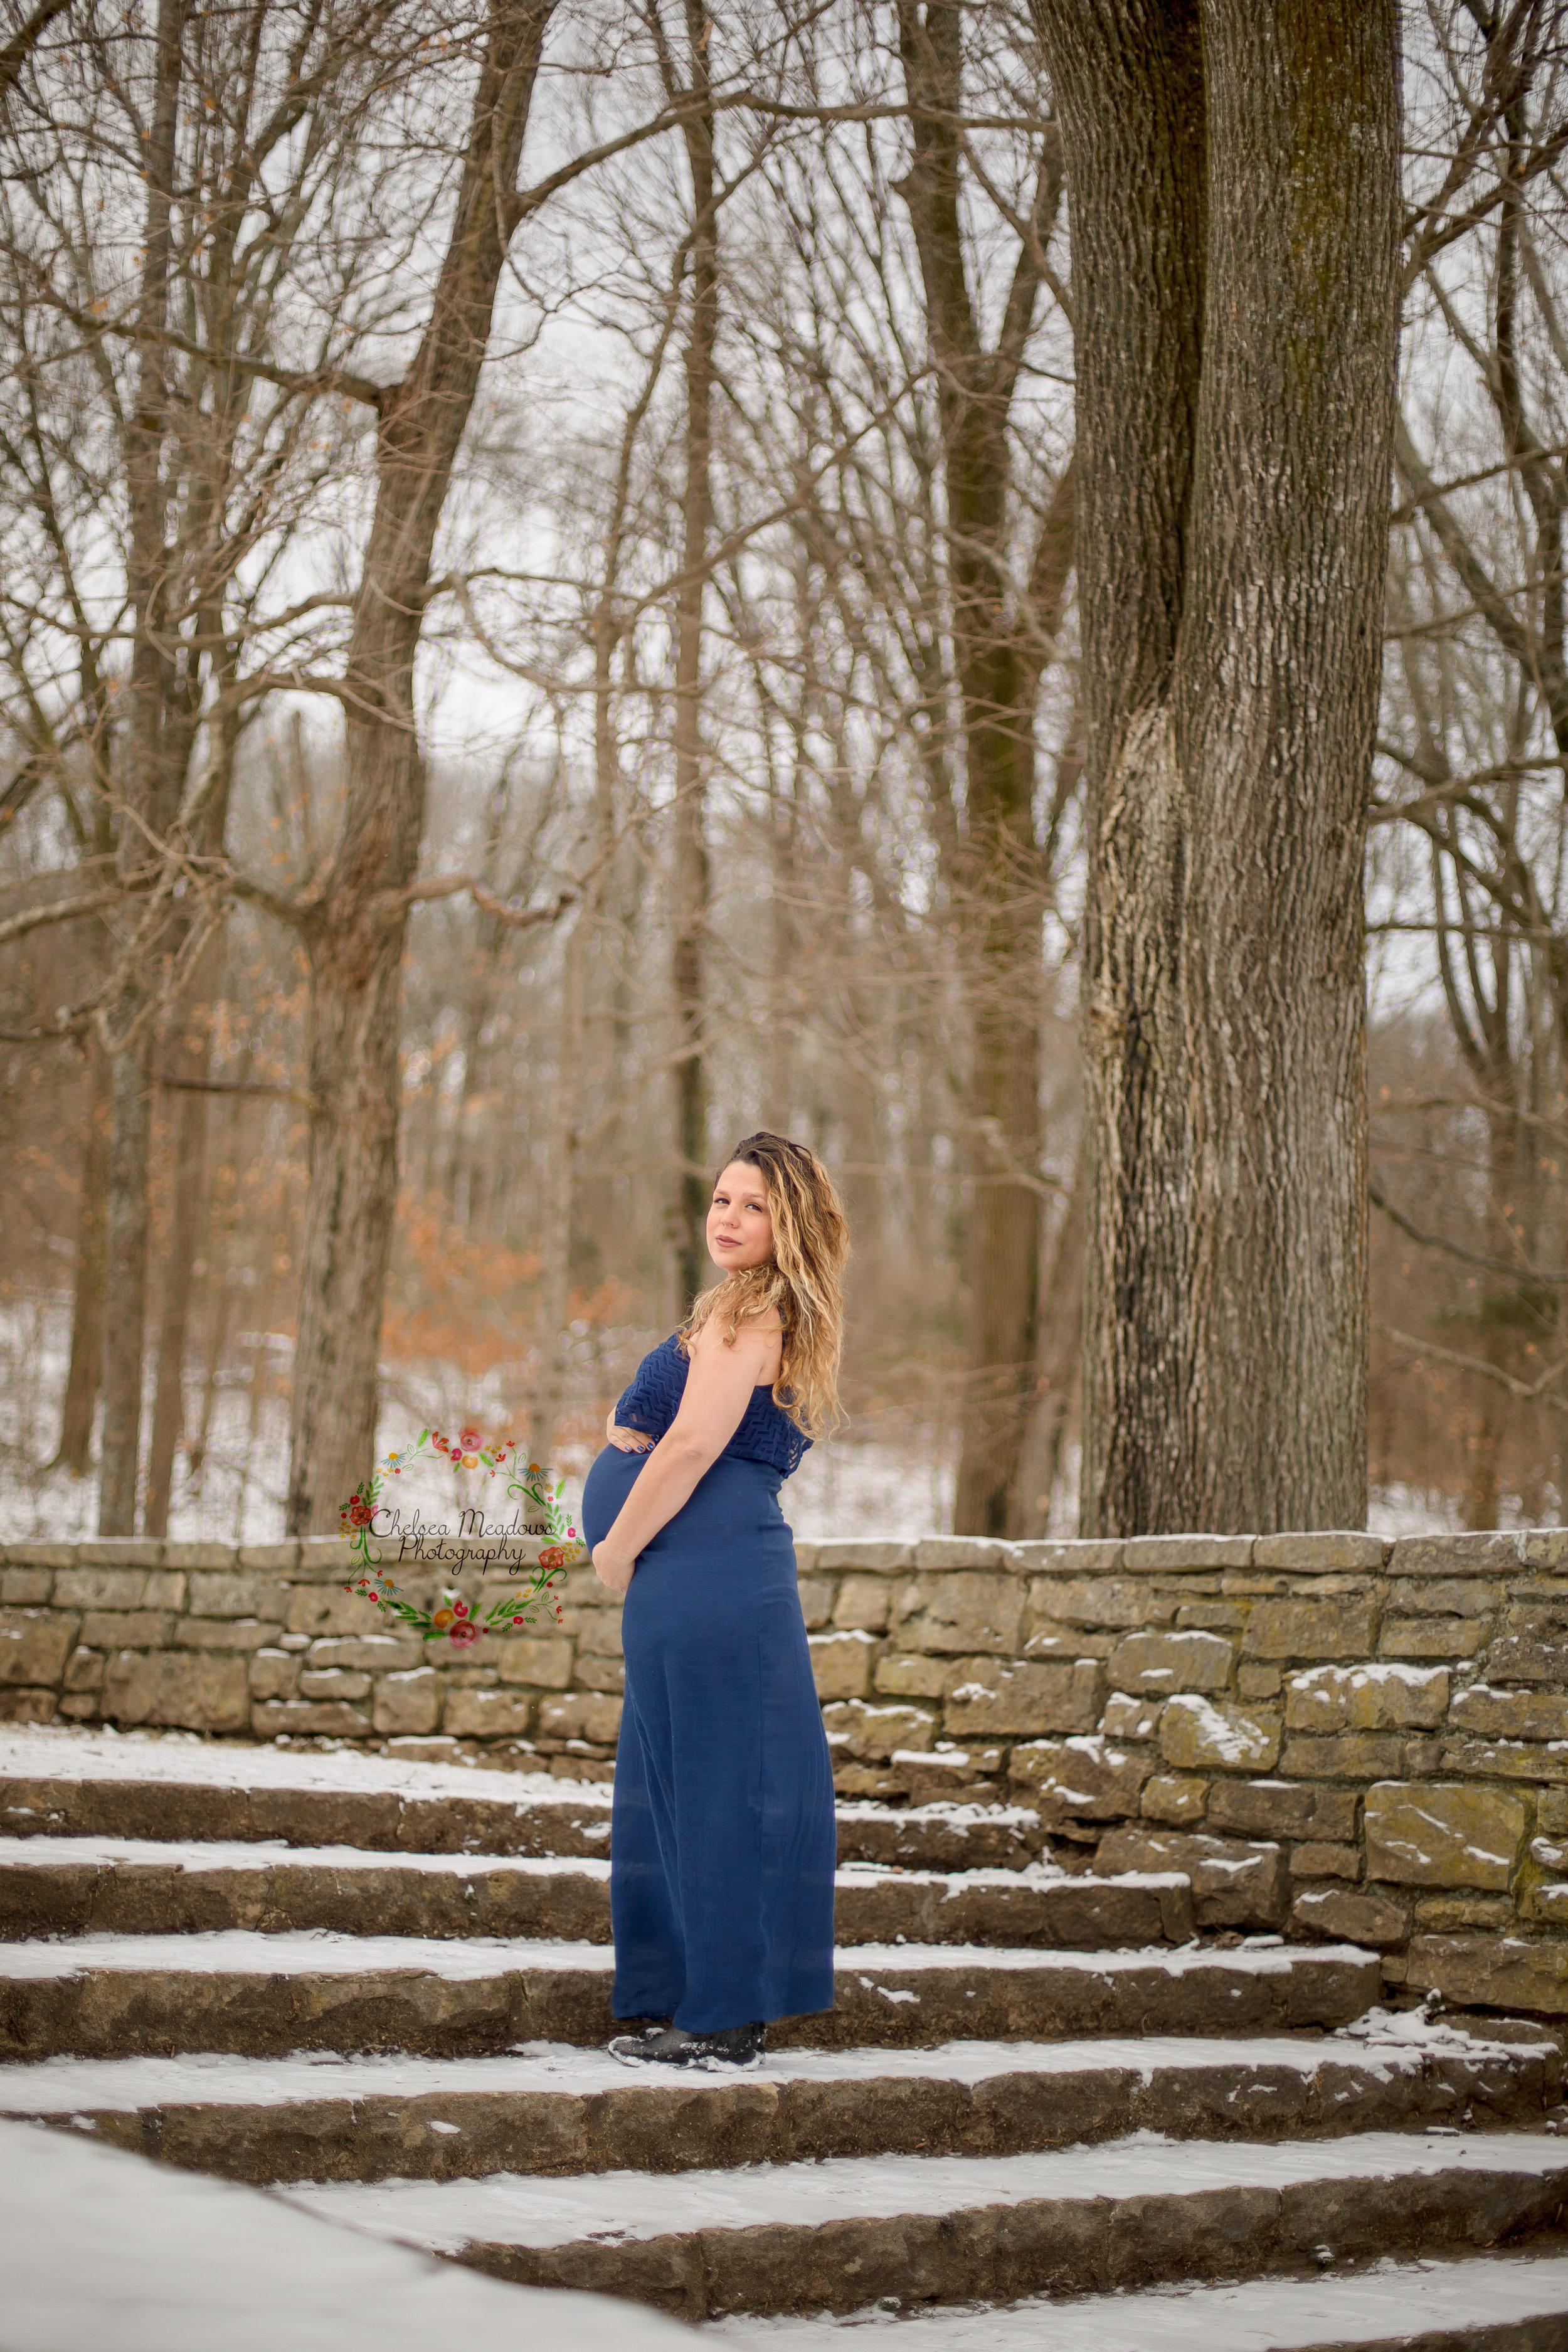 Jessica Snow Maternity - Nashville Maternity Photographer - Chelsea Meadows Photography (1).jpg